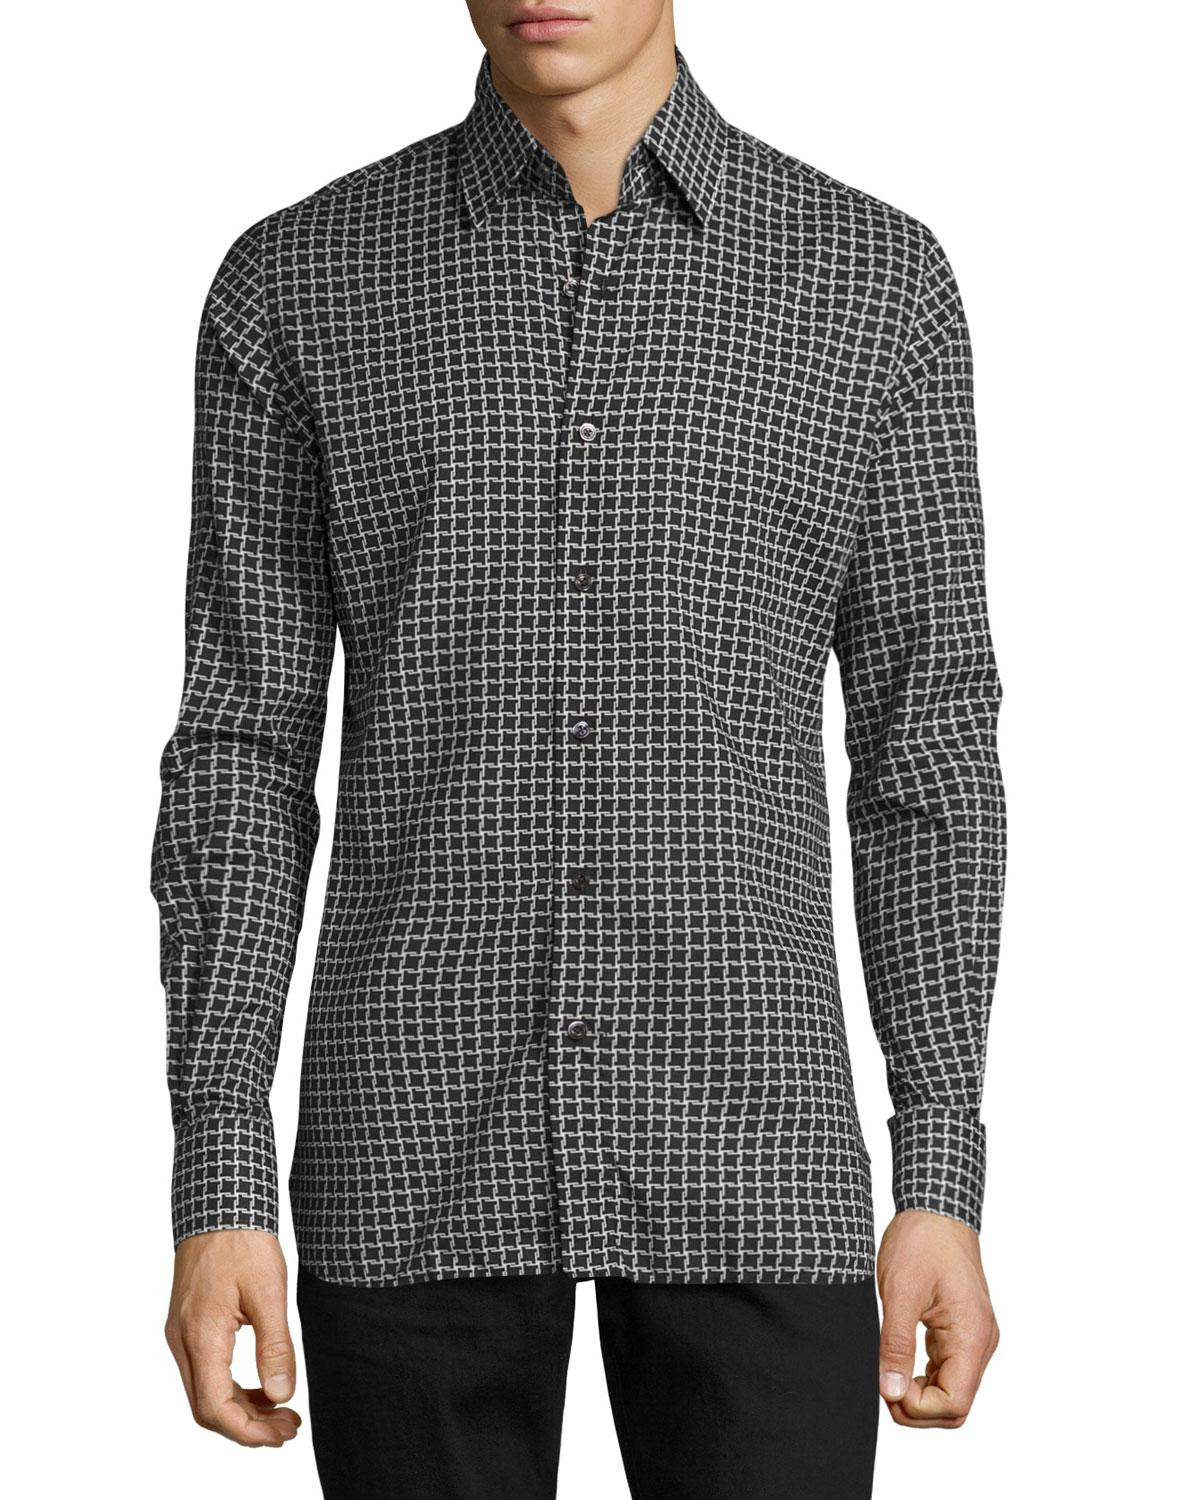 Casual Shirts. We design our casual shirts for men who want to look polished and put together, even when dressing down. Tailored with the same exact precision as our signature dress shirts.